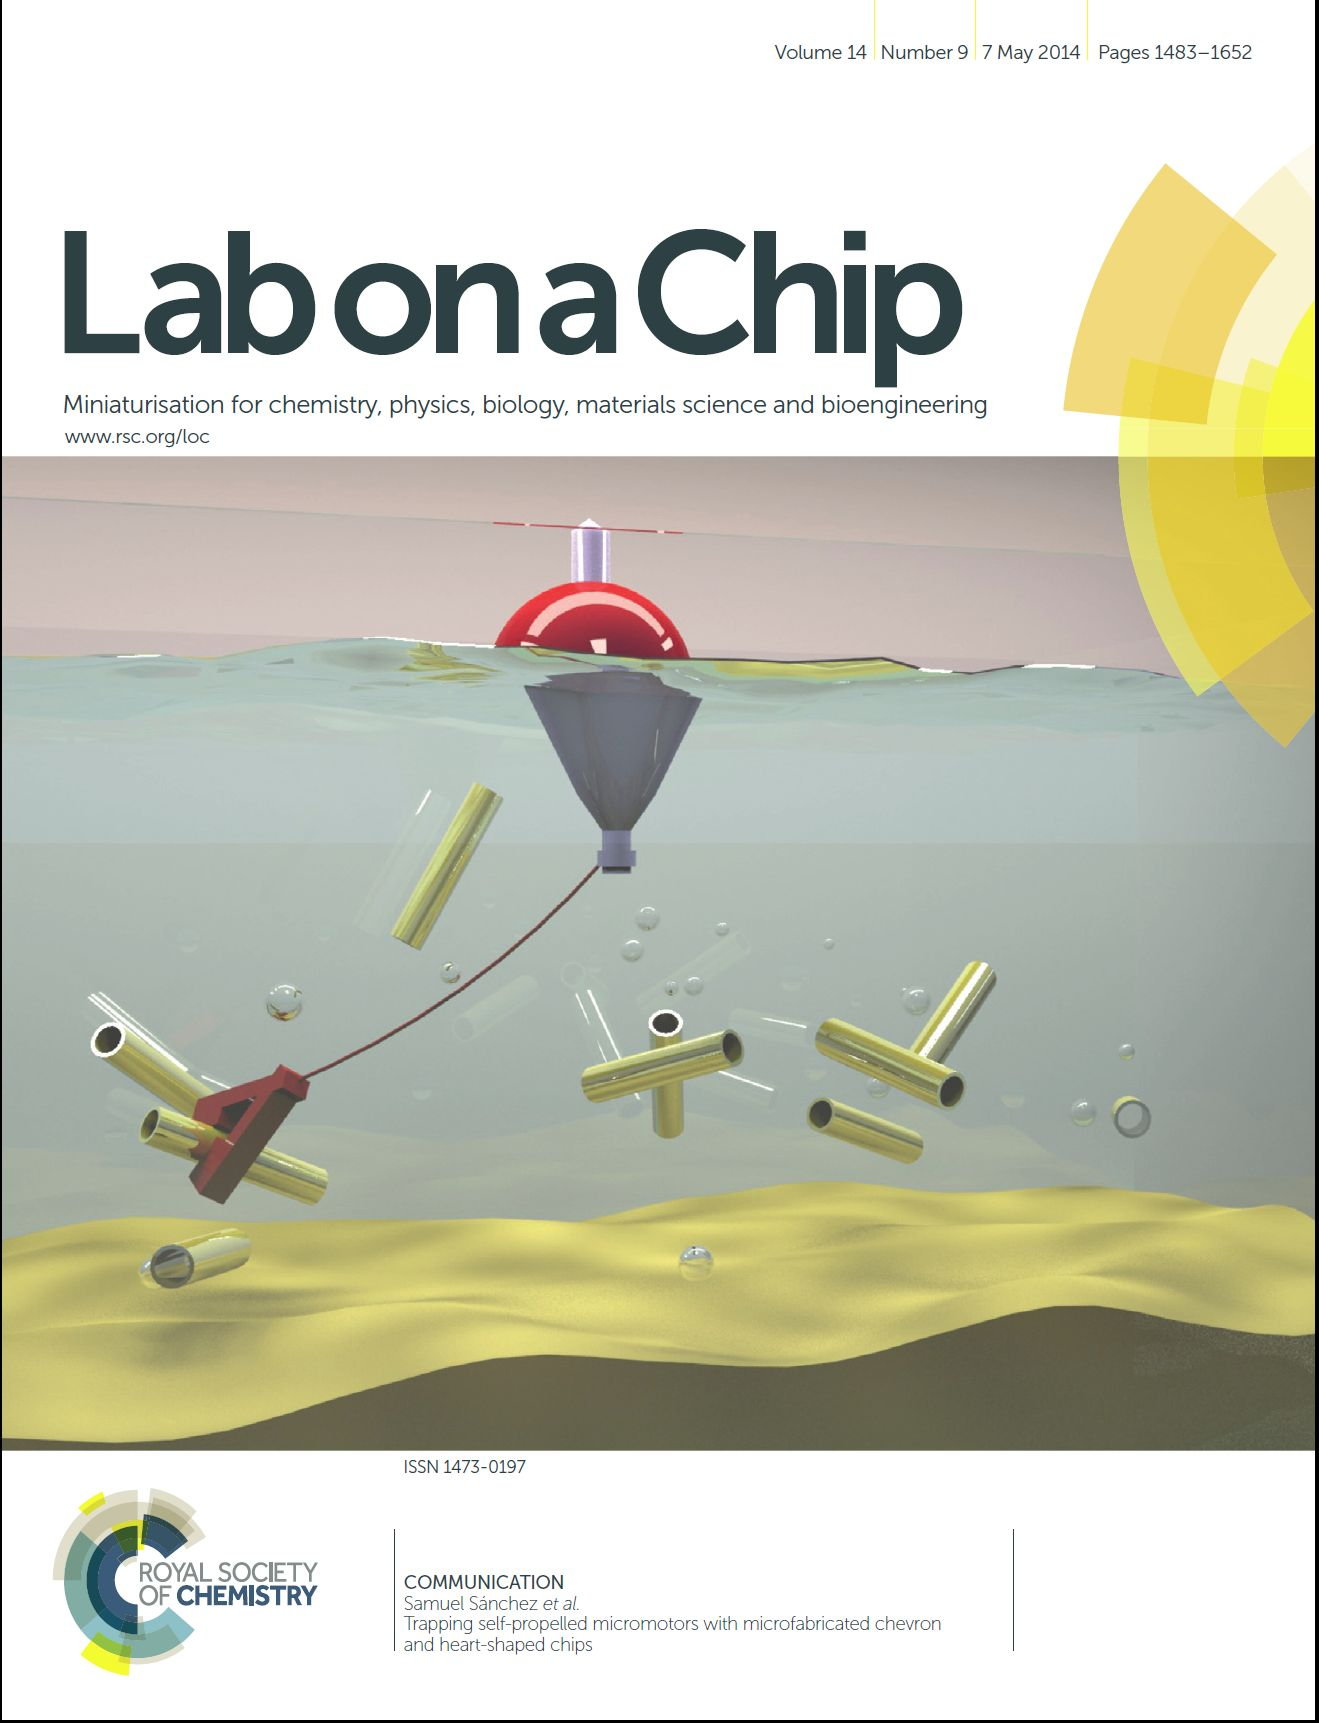 Trapping self-propelled micromotors with microfabricated chevron and heart-shaped chips